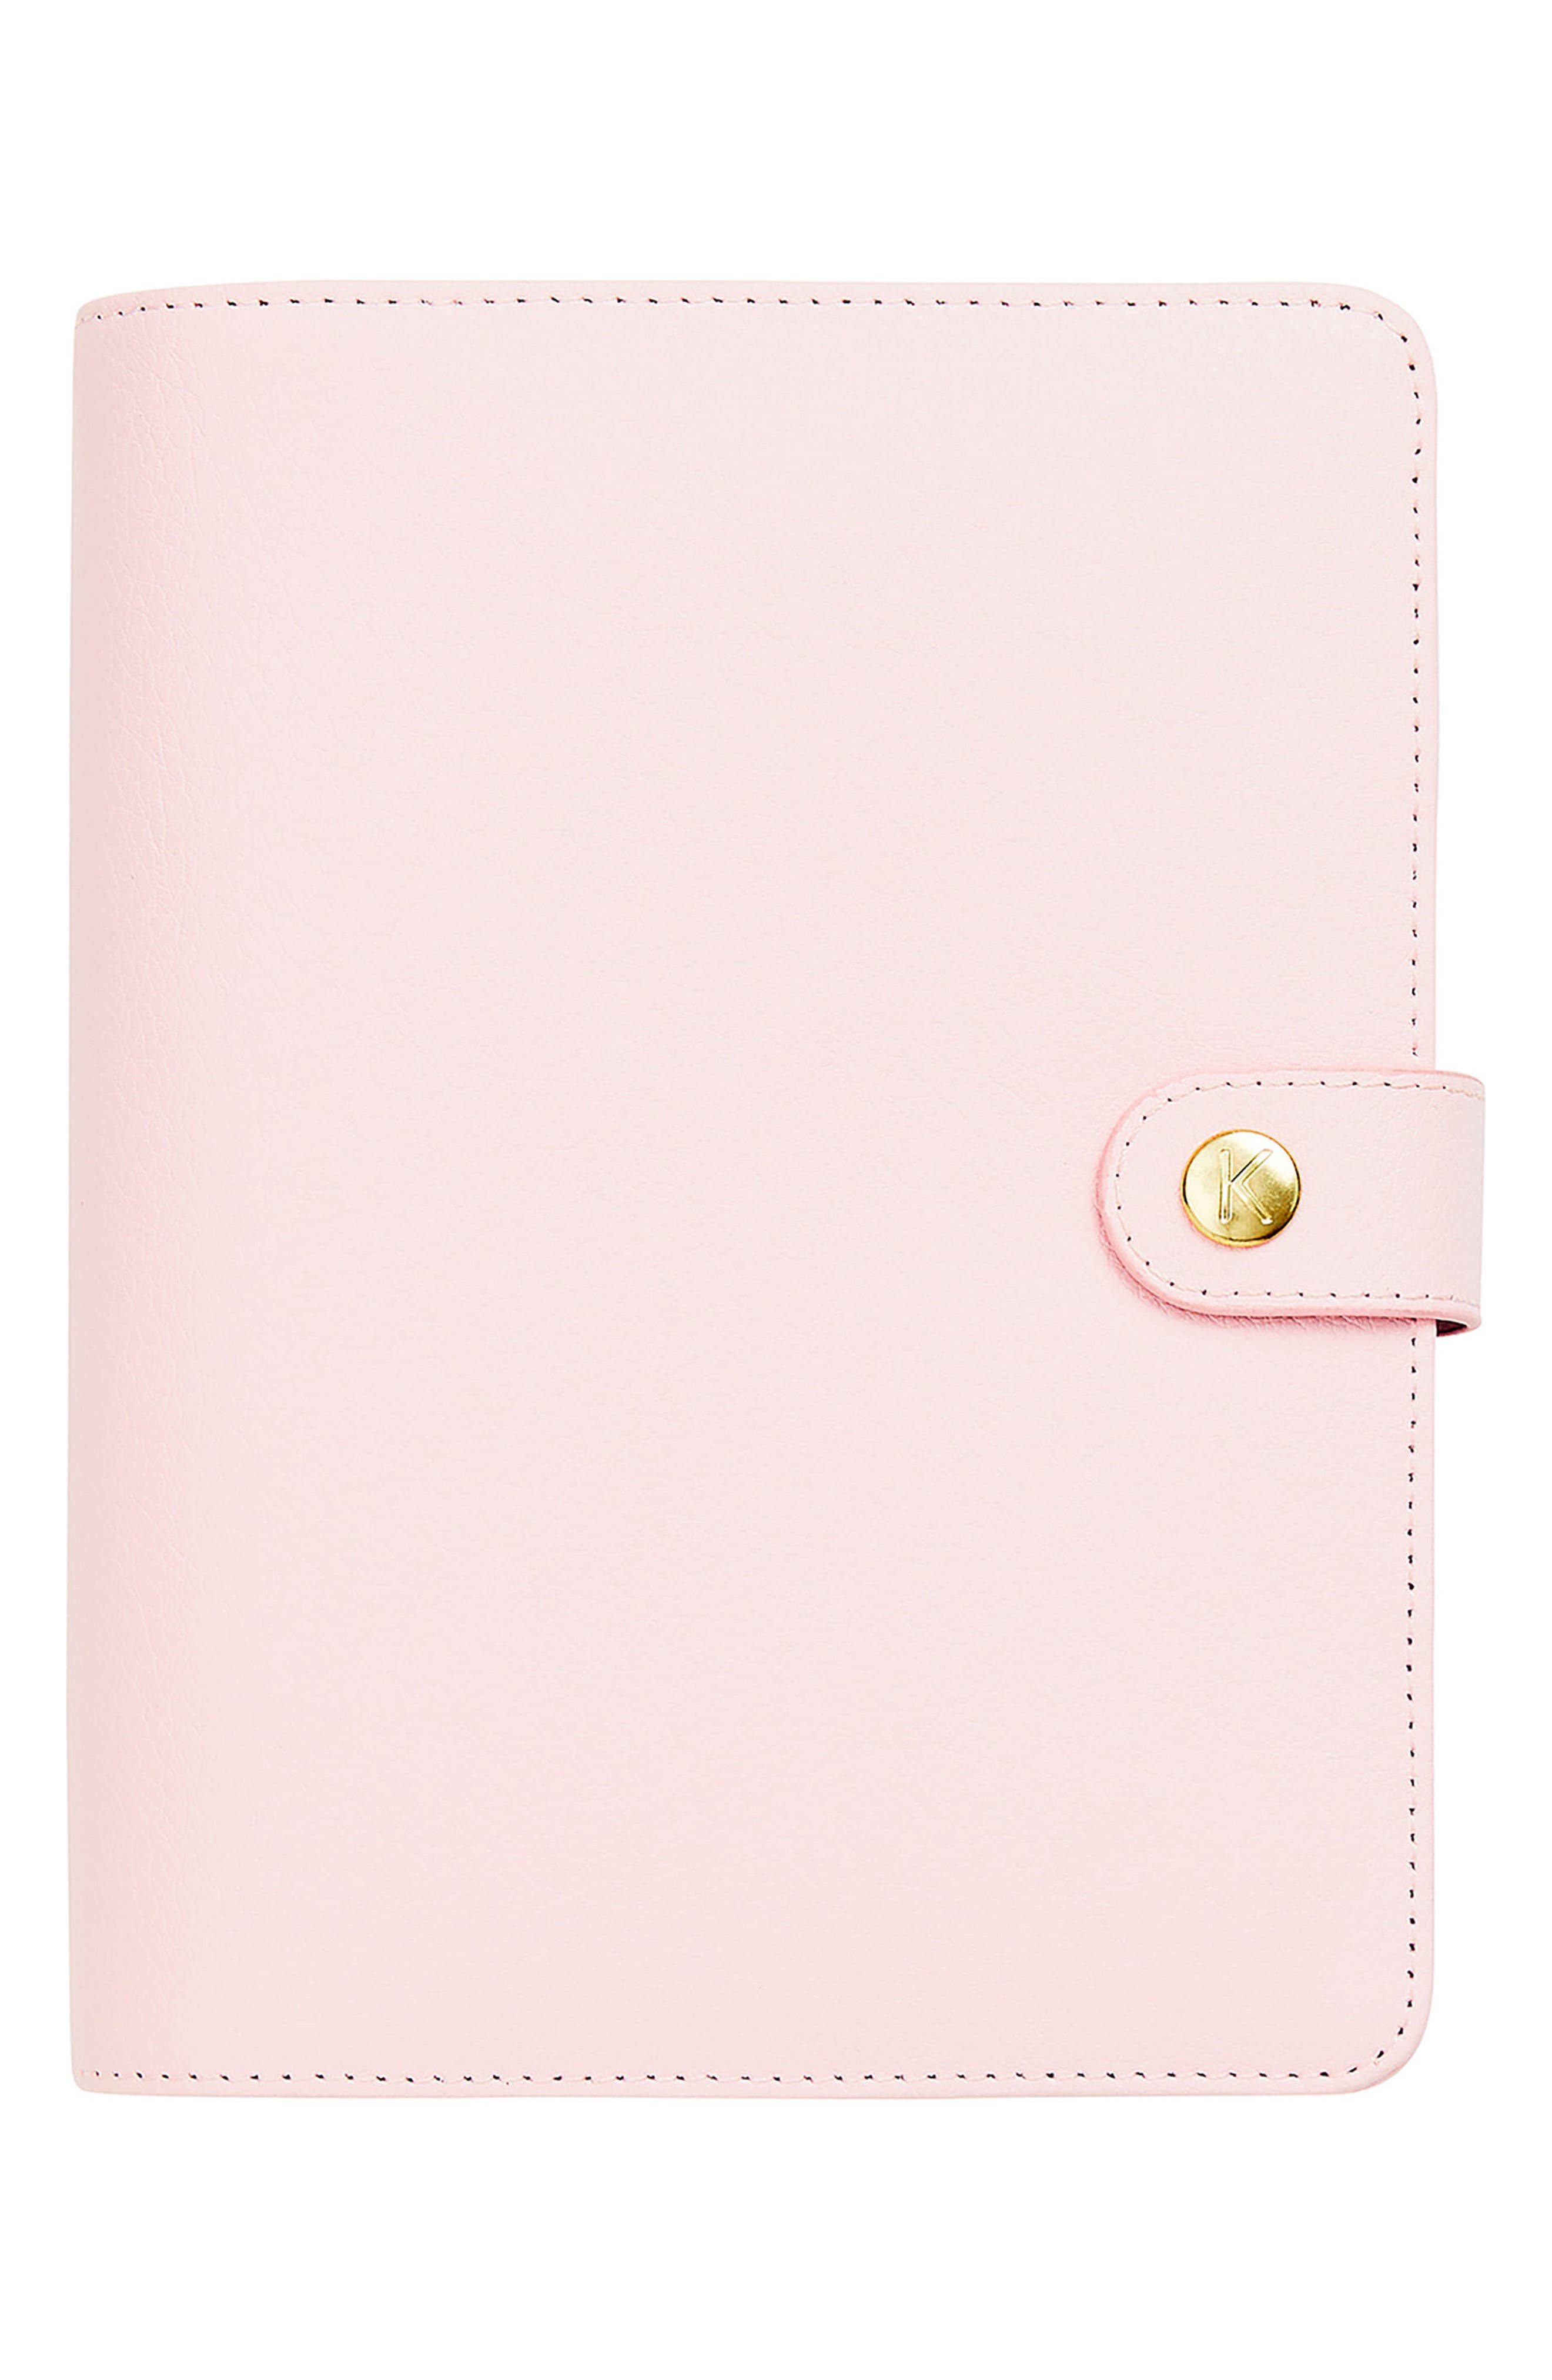 18-Month Zip-Around Leather Perpetual Planner,                             Main thumbnail 1, color,                             PALE PINK